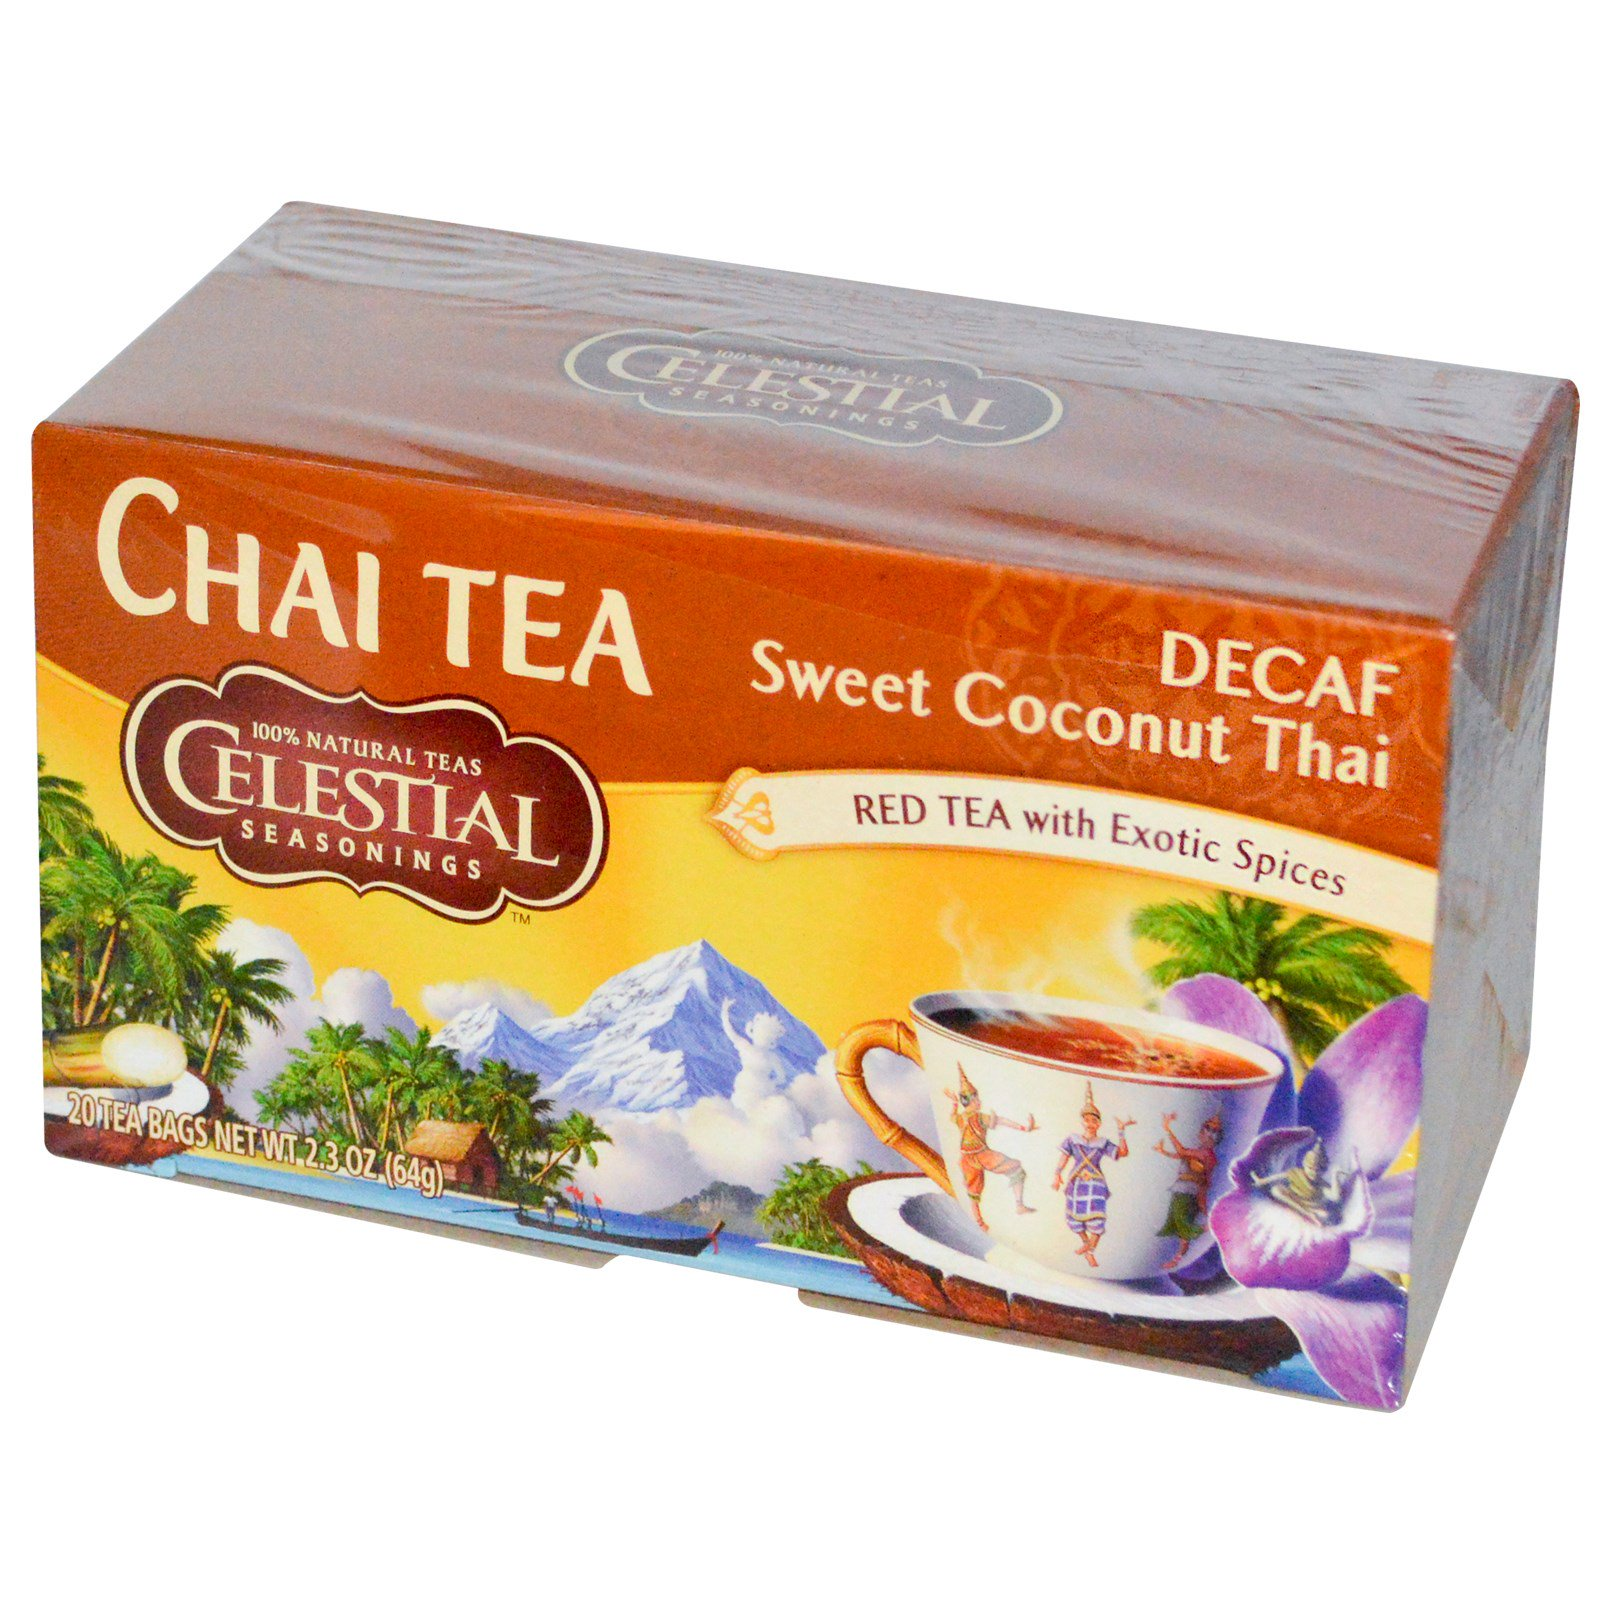 Celestial Seasonings Chai Tea Decaf Sweet Coconut Thai 20 Bags